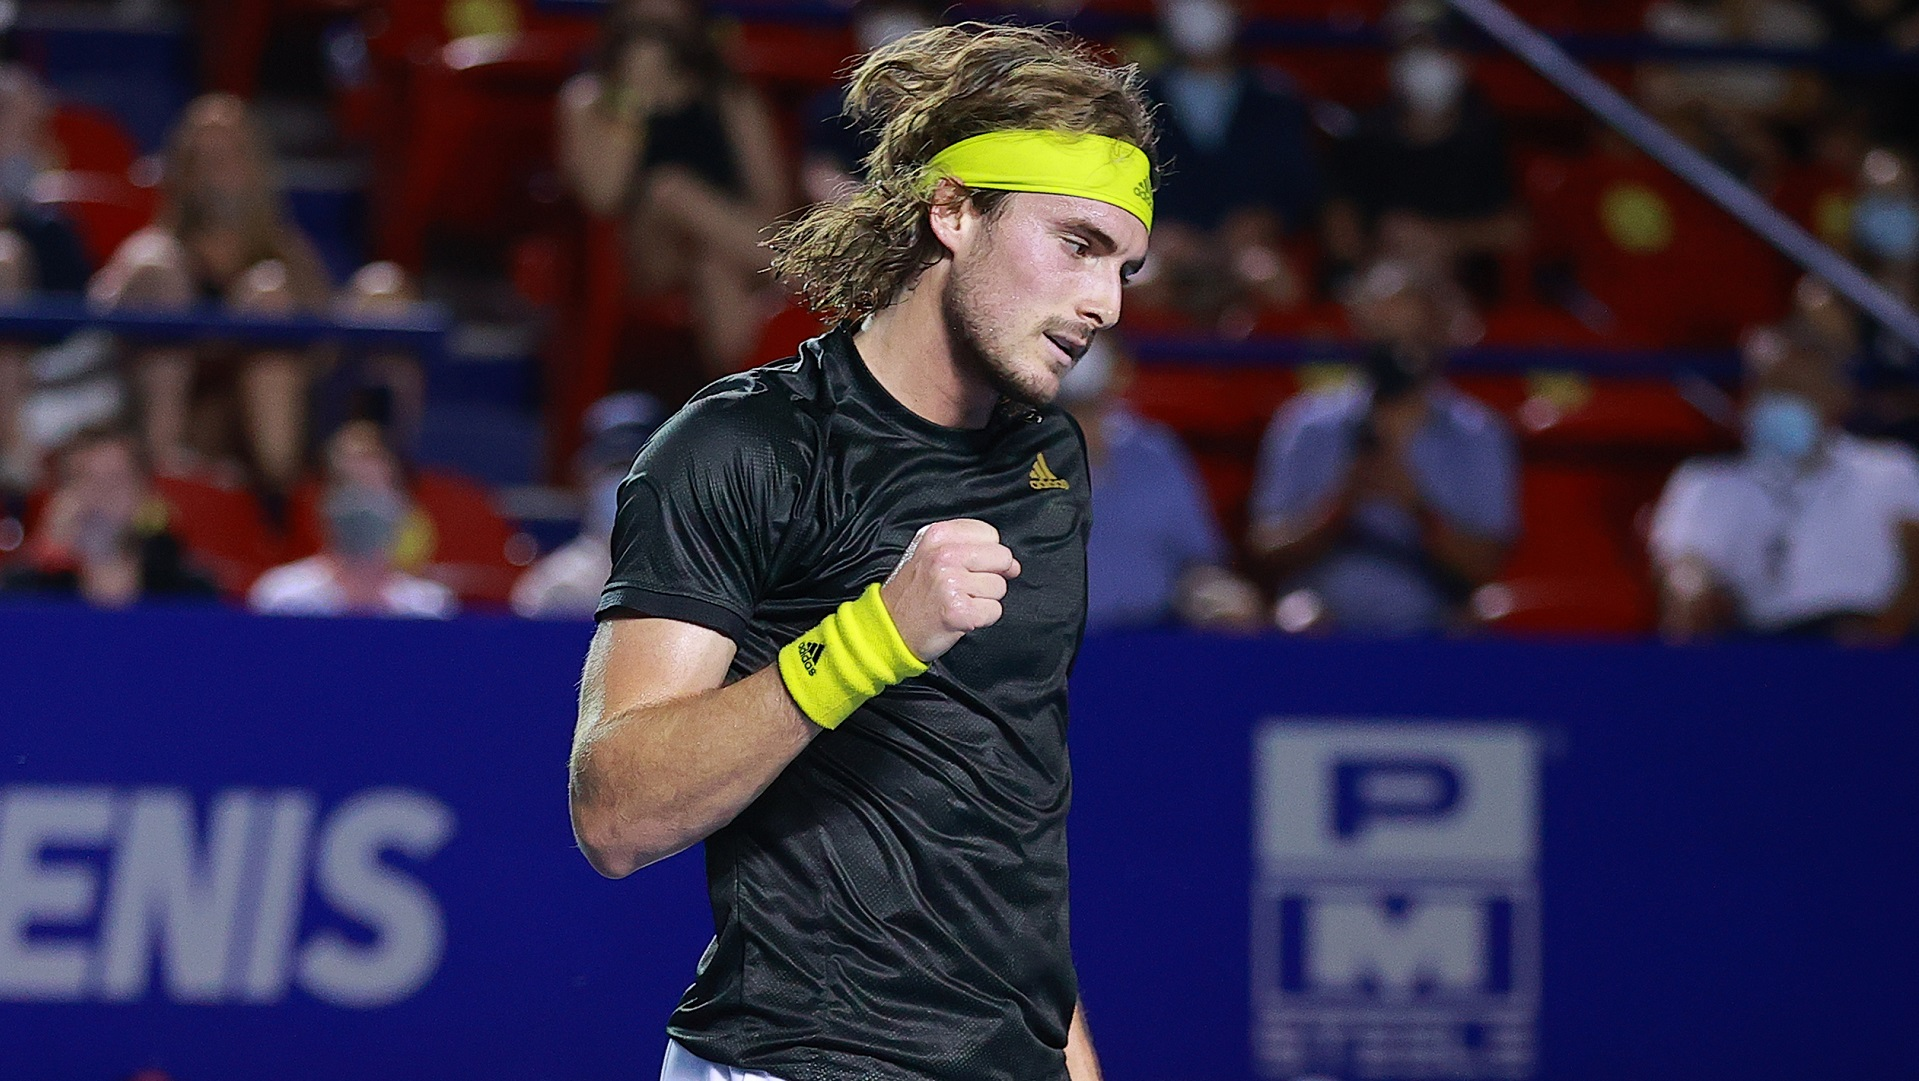 Tsitsipas to face Zverev in Mexican Open final after easing past Musetti